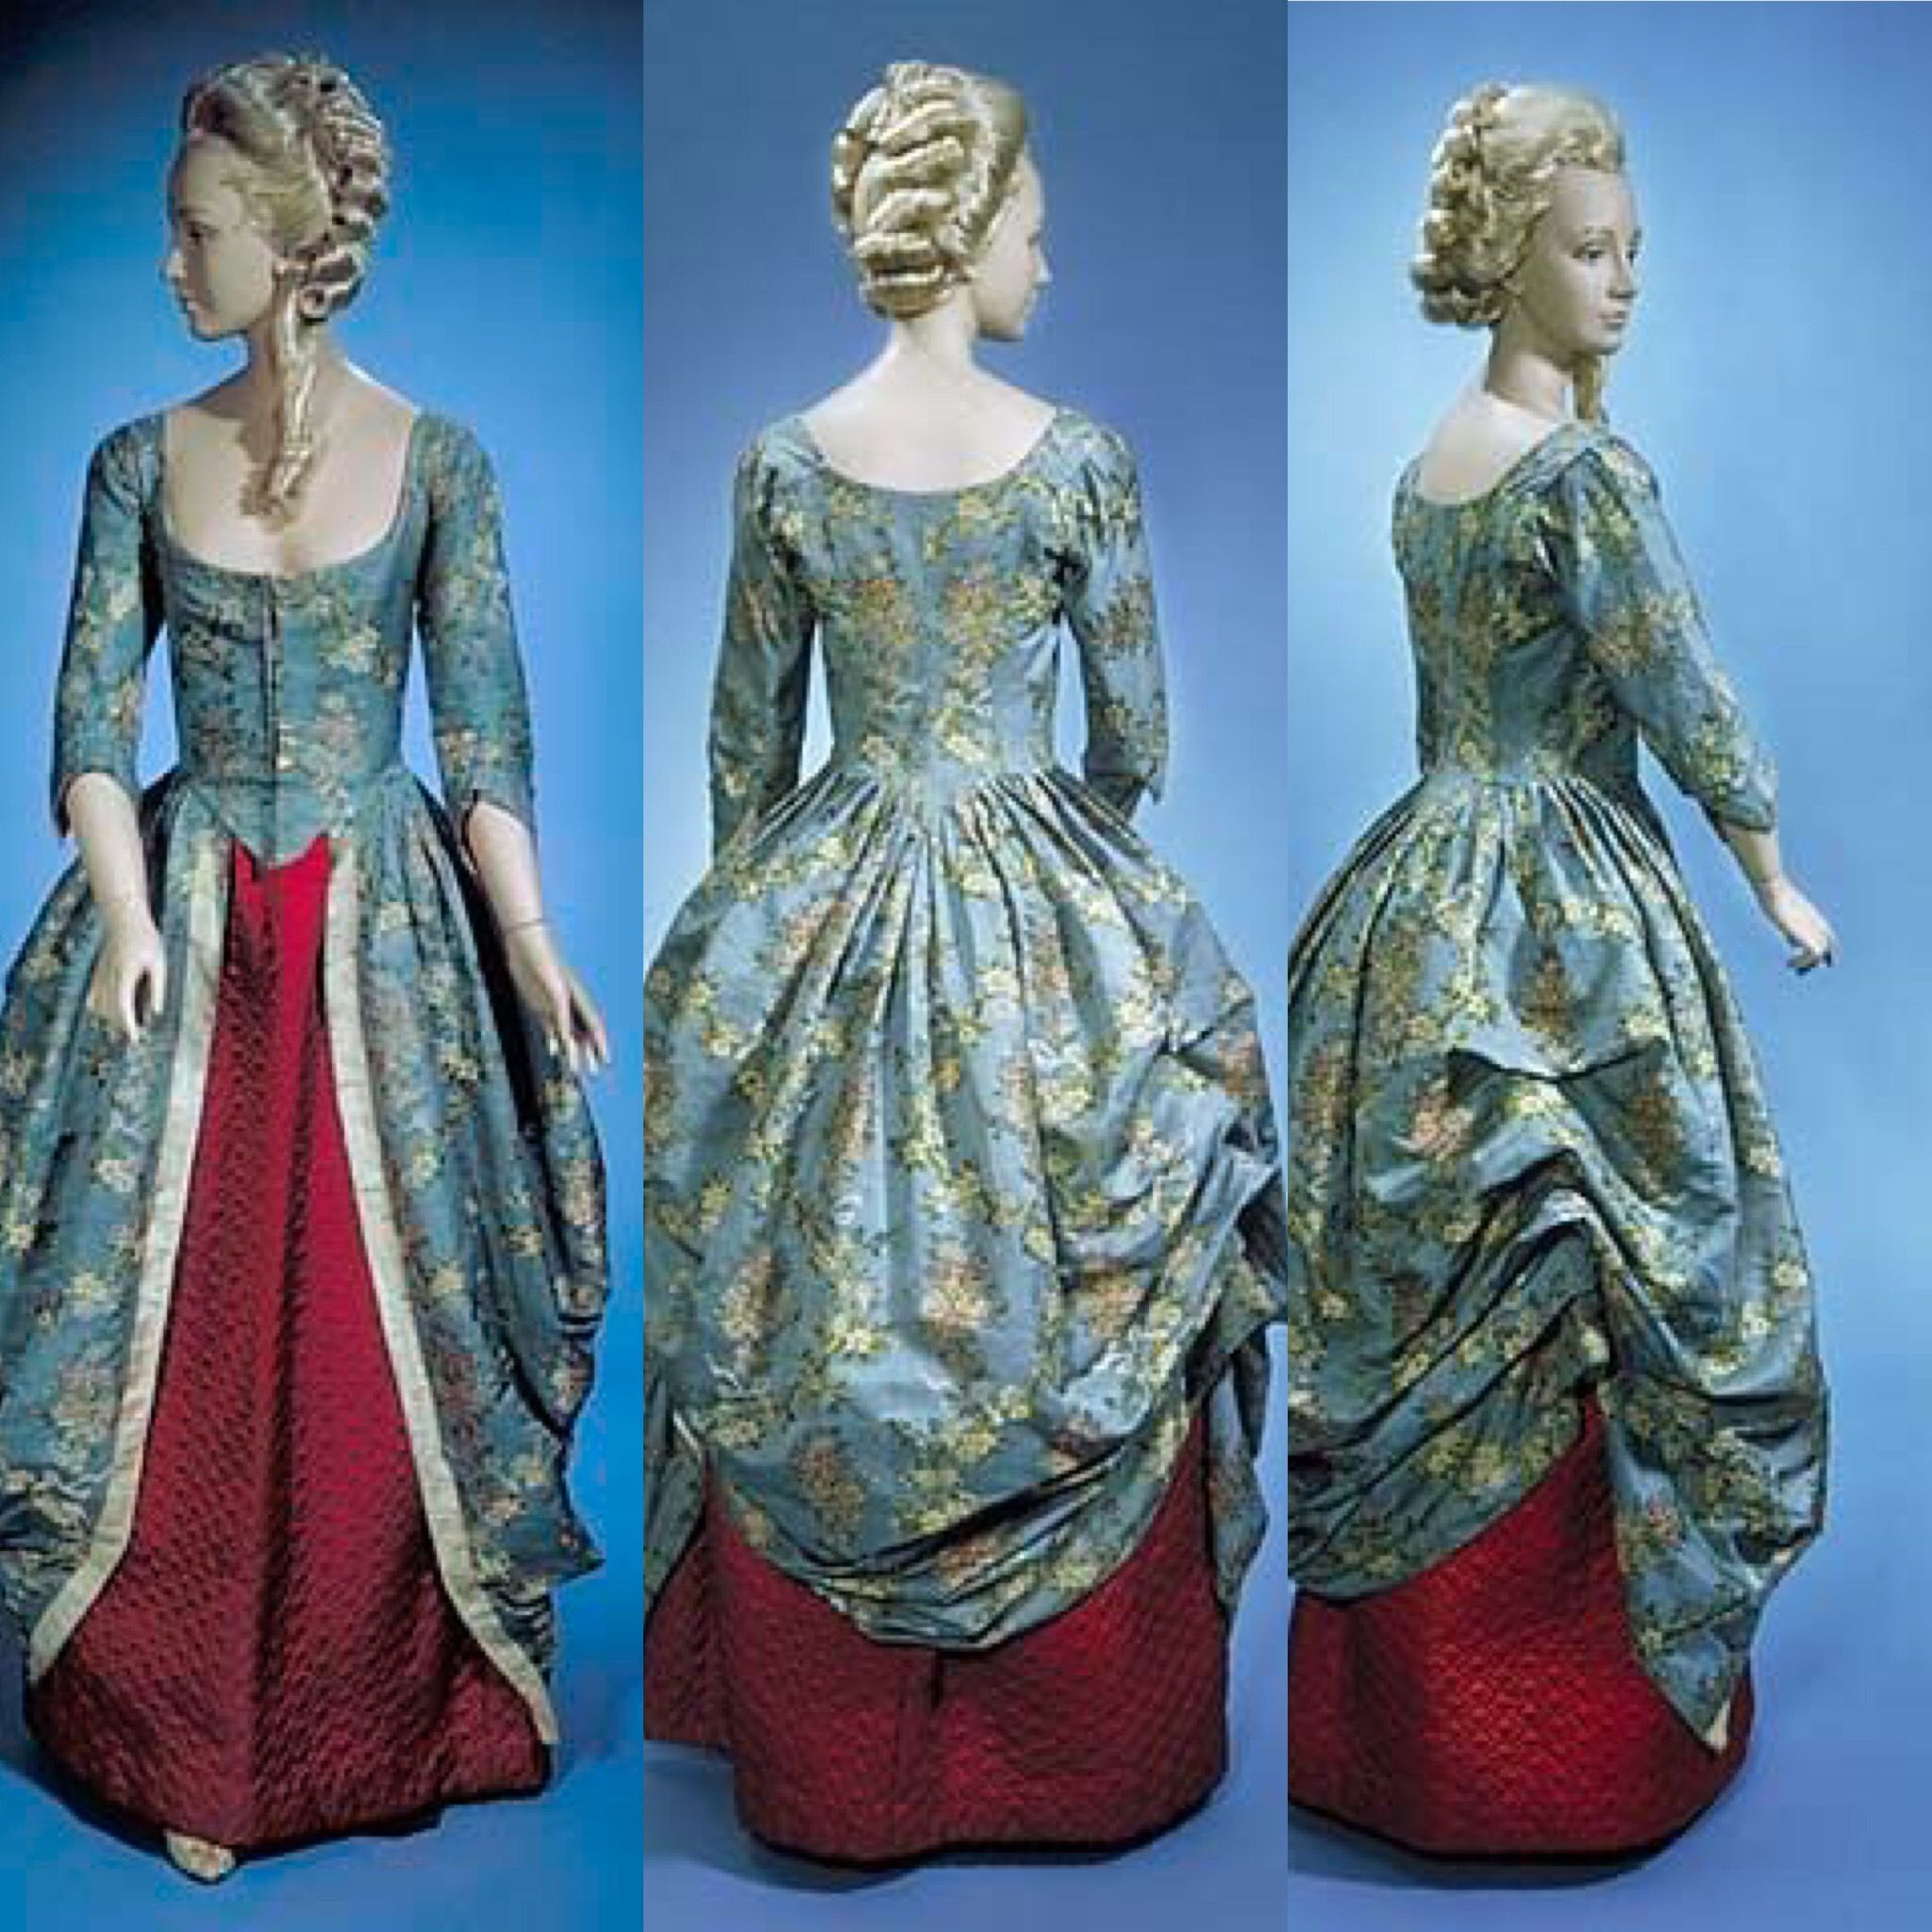 polonaise dress ca 1770 1785 via the smithsonian national museum of